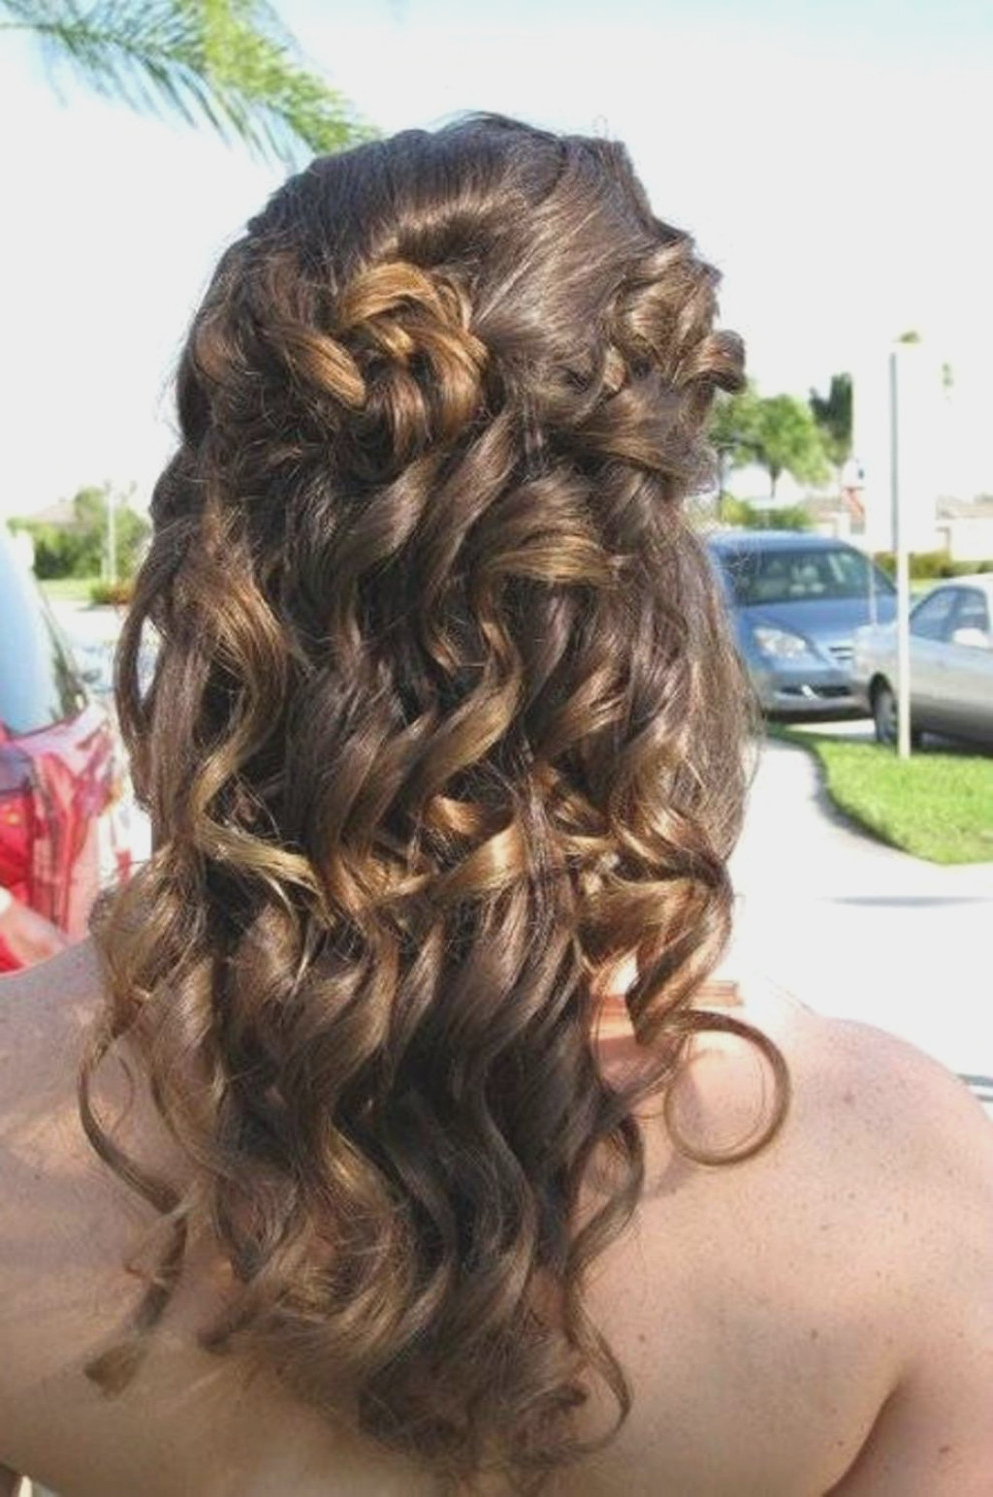 ? 57 Wonderful Homecoming Hairstyles For Short Hair: Cute With Regard To Homecoming Short Hair Styles (View 16 of 25)